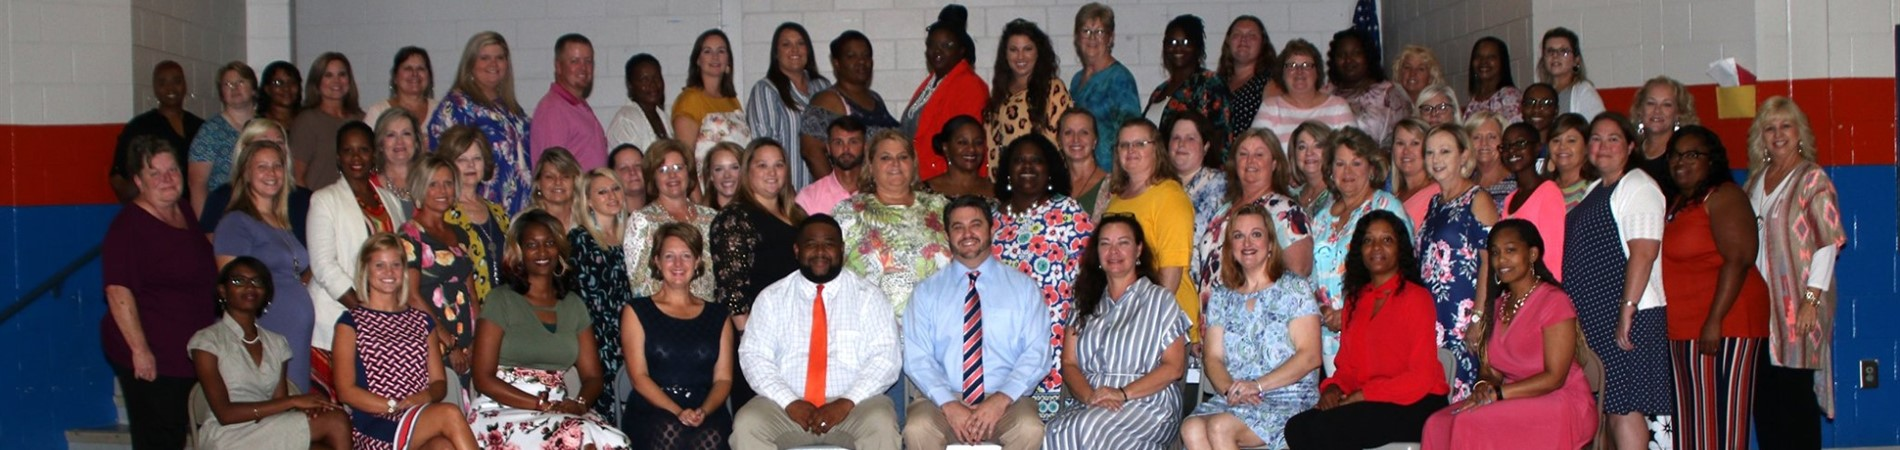 TCES Staff and Faculty